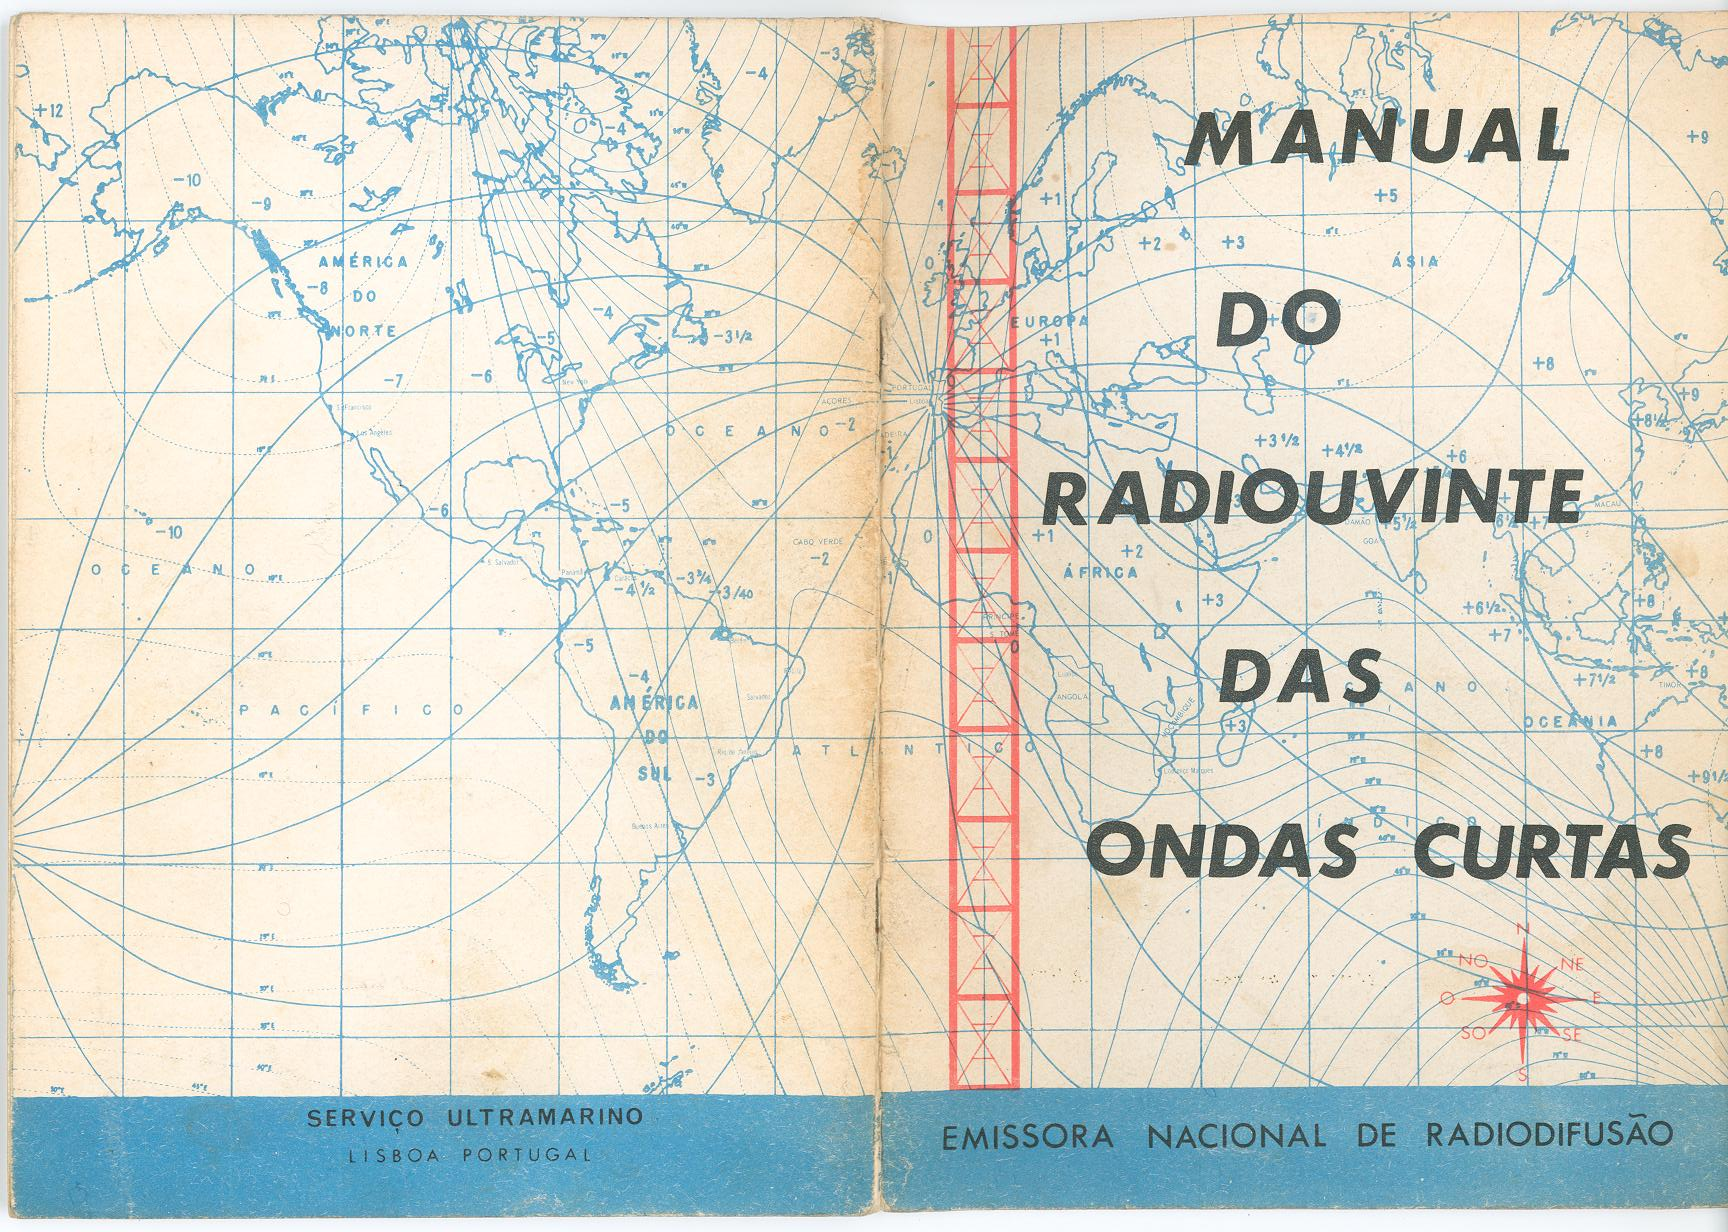 Manual do rádiouvinte das ondas curtas